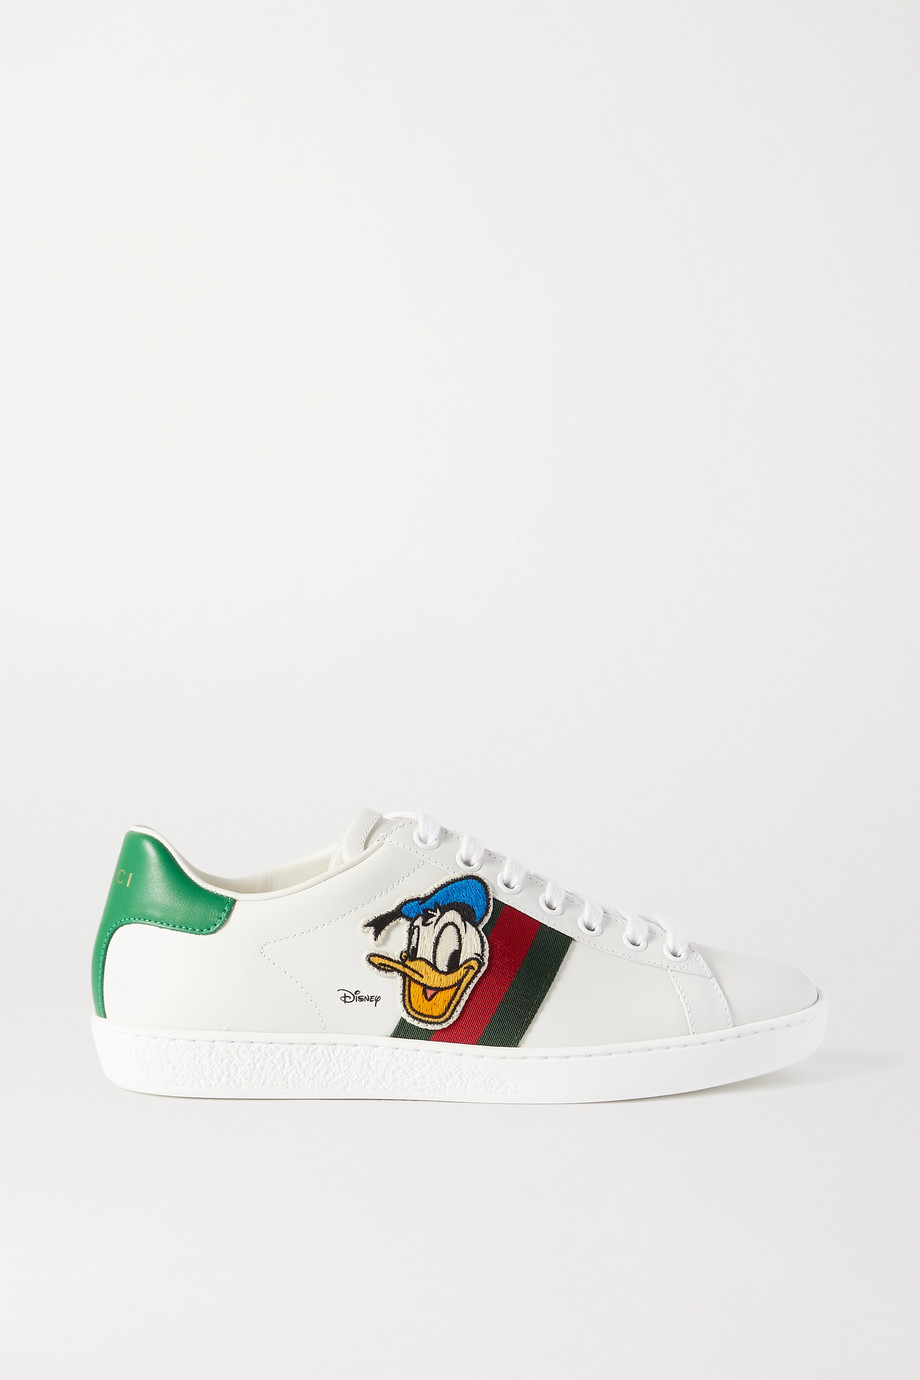 Gucci + Disney Ace Sneakers aus Leder mit Canvas-Besatz und Applikation